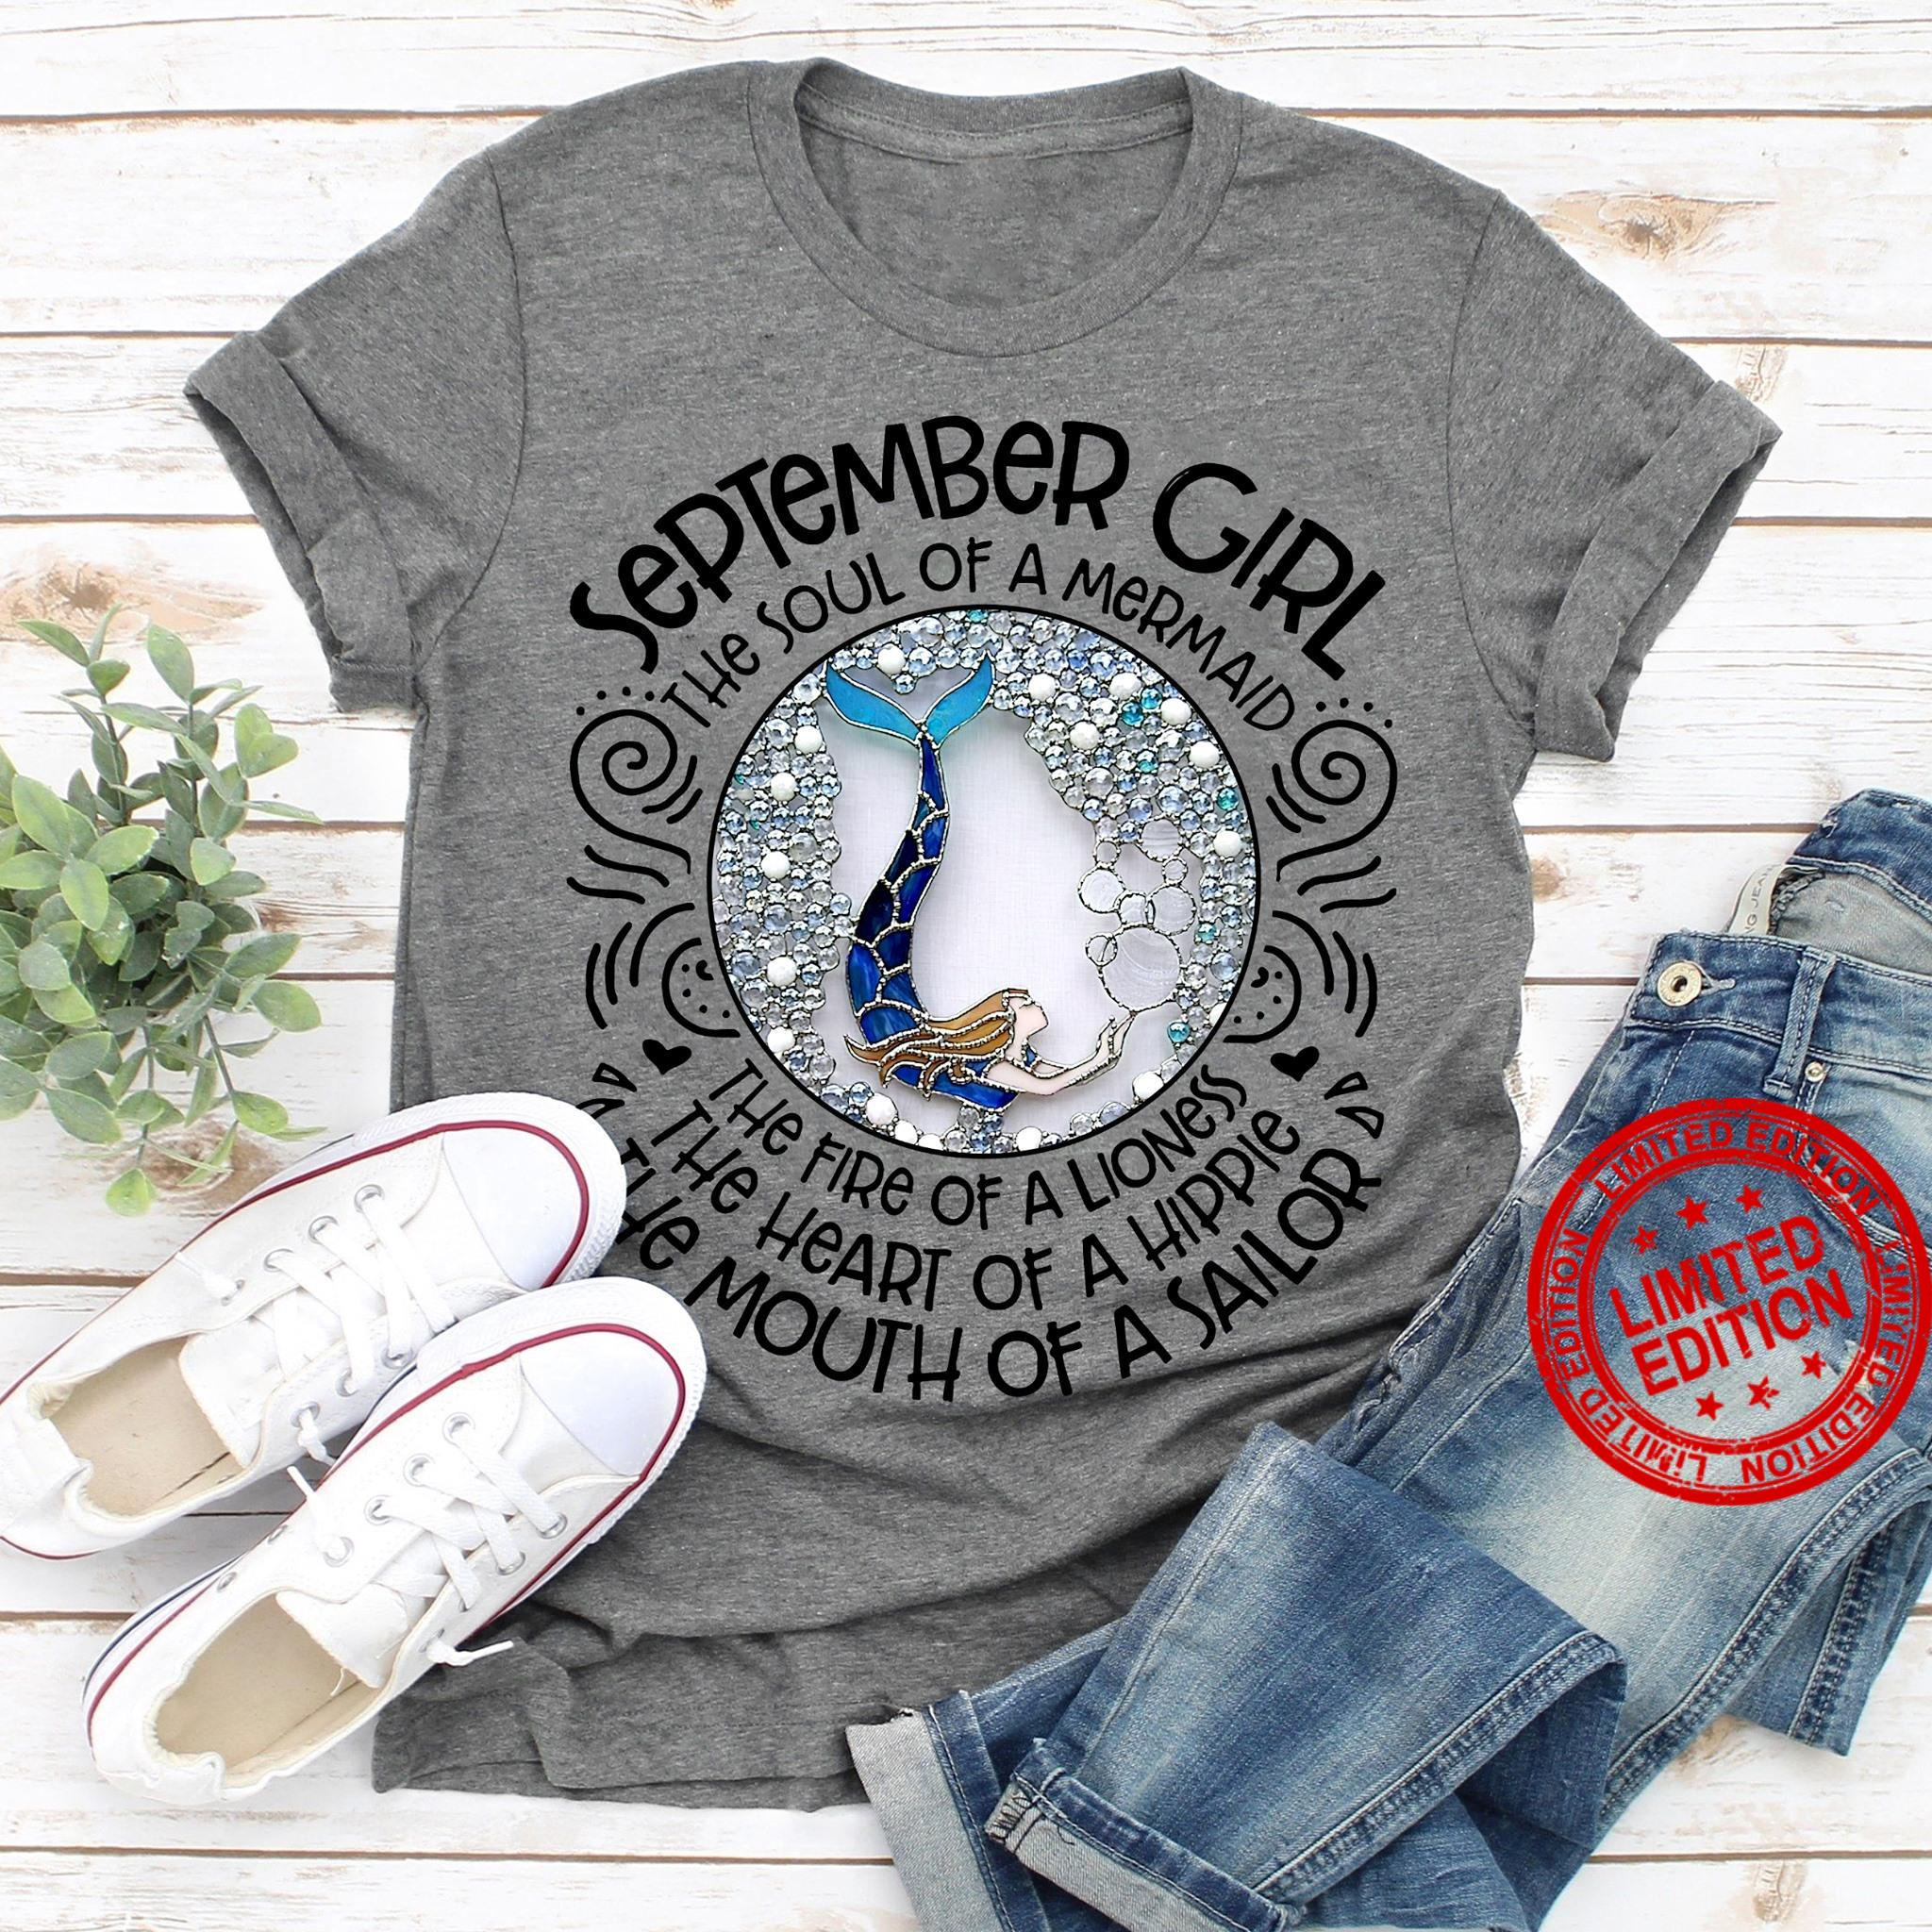 September Girl The Soul Of A Mermaid The Fire Of A Lioness The Heart Of A Hippie The Mouth Of A Sailor Shirt